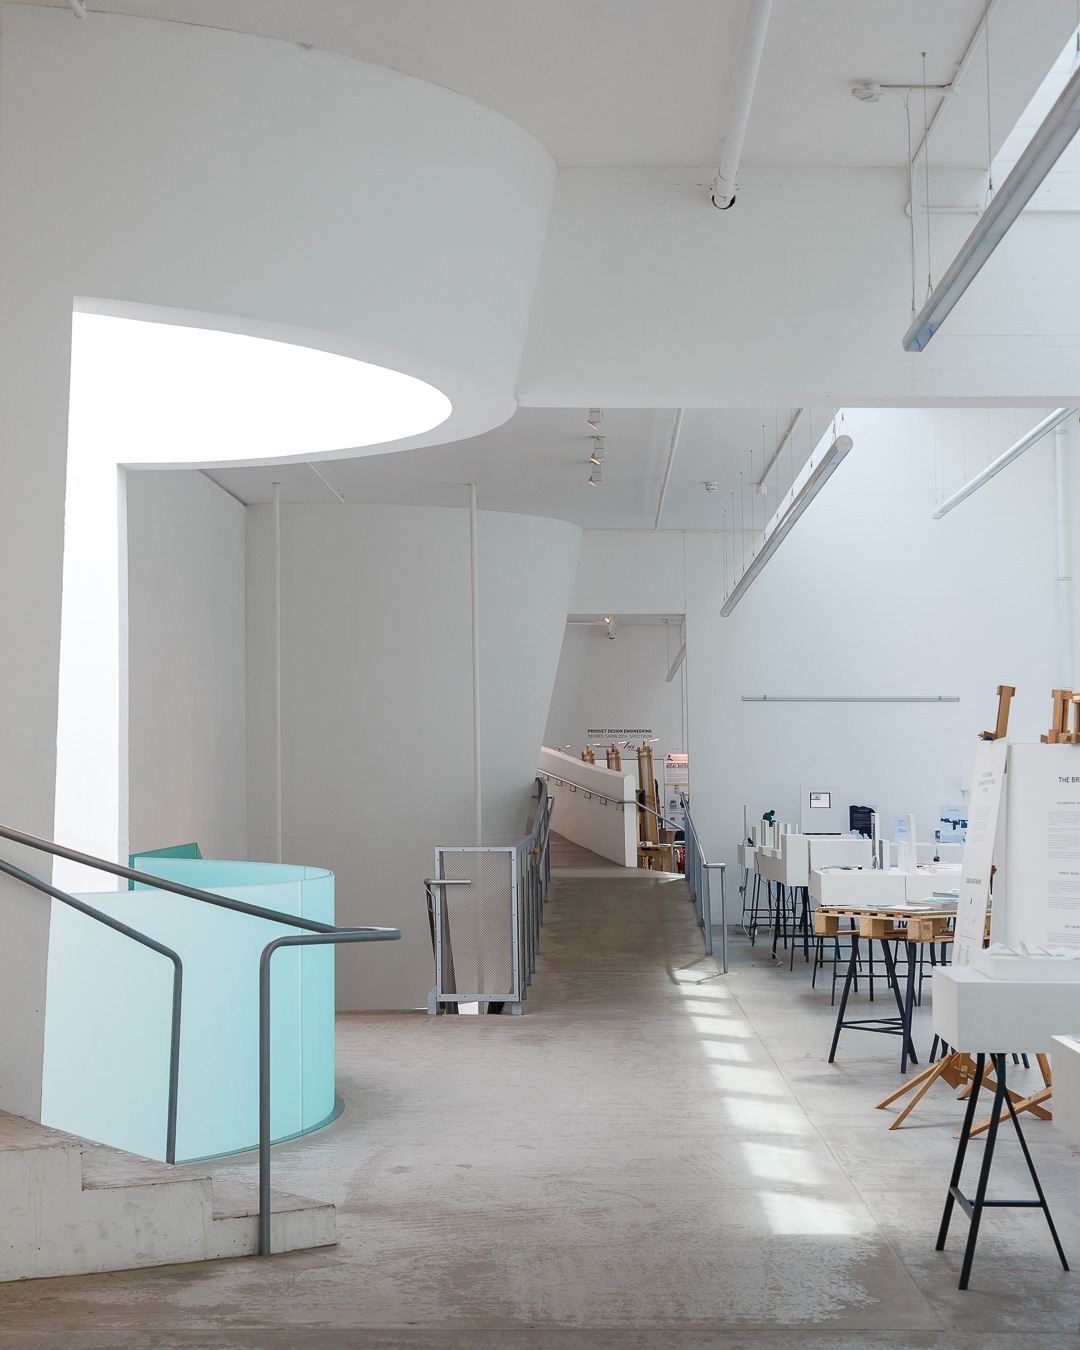 doublespace_architecture_steven_holl_glasgow_reid_school_of_arts-0055